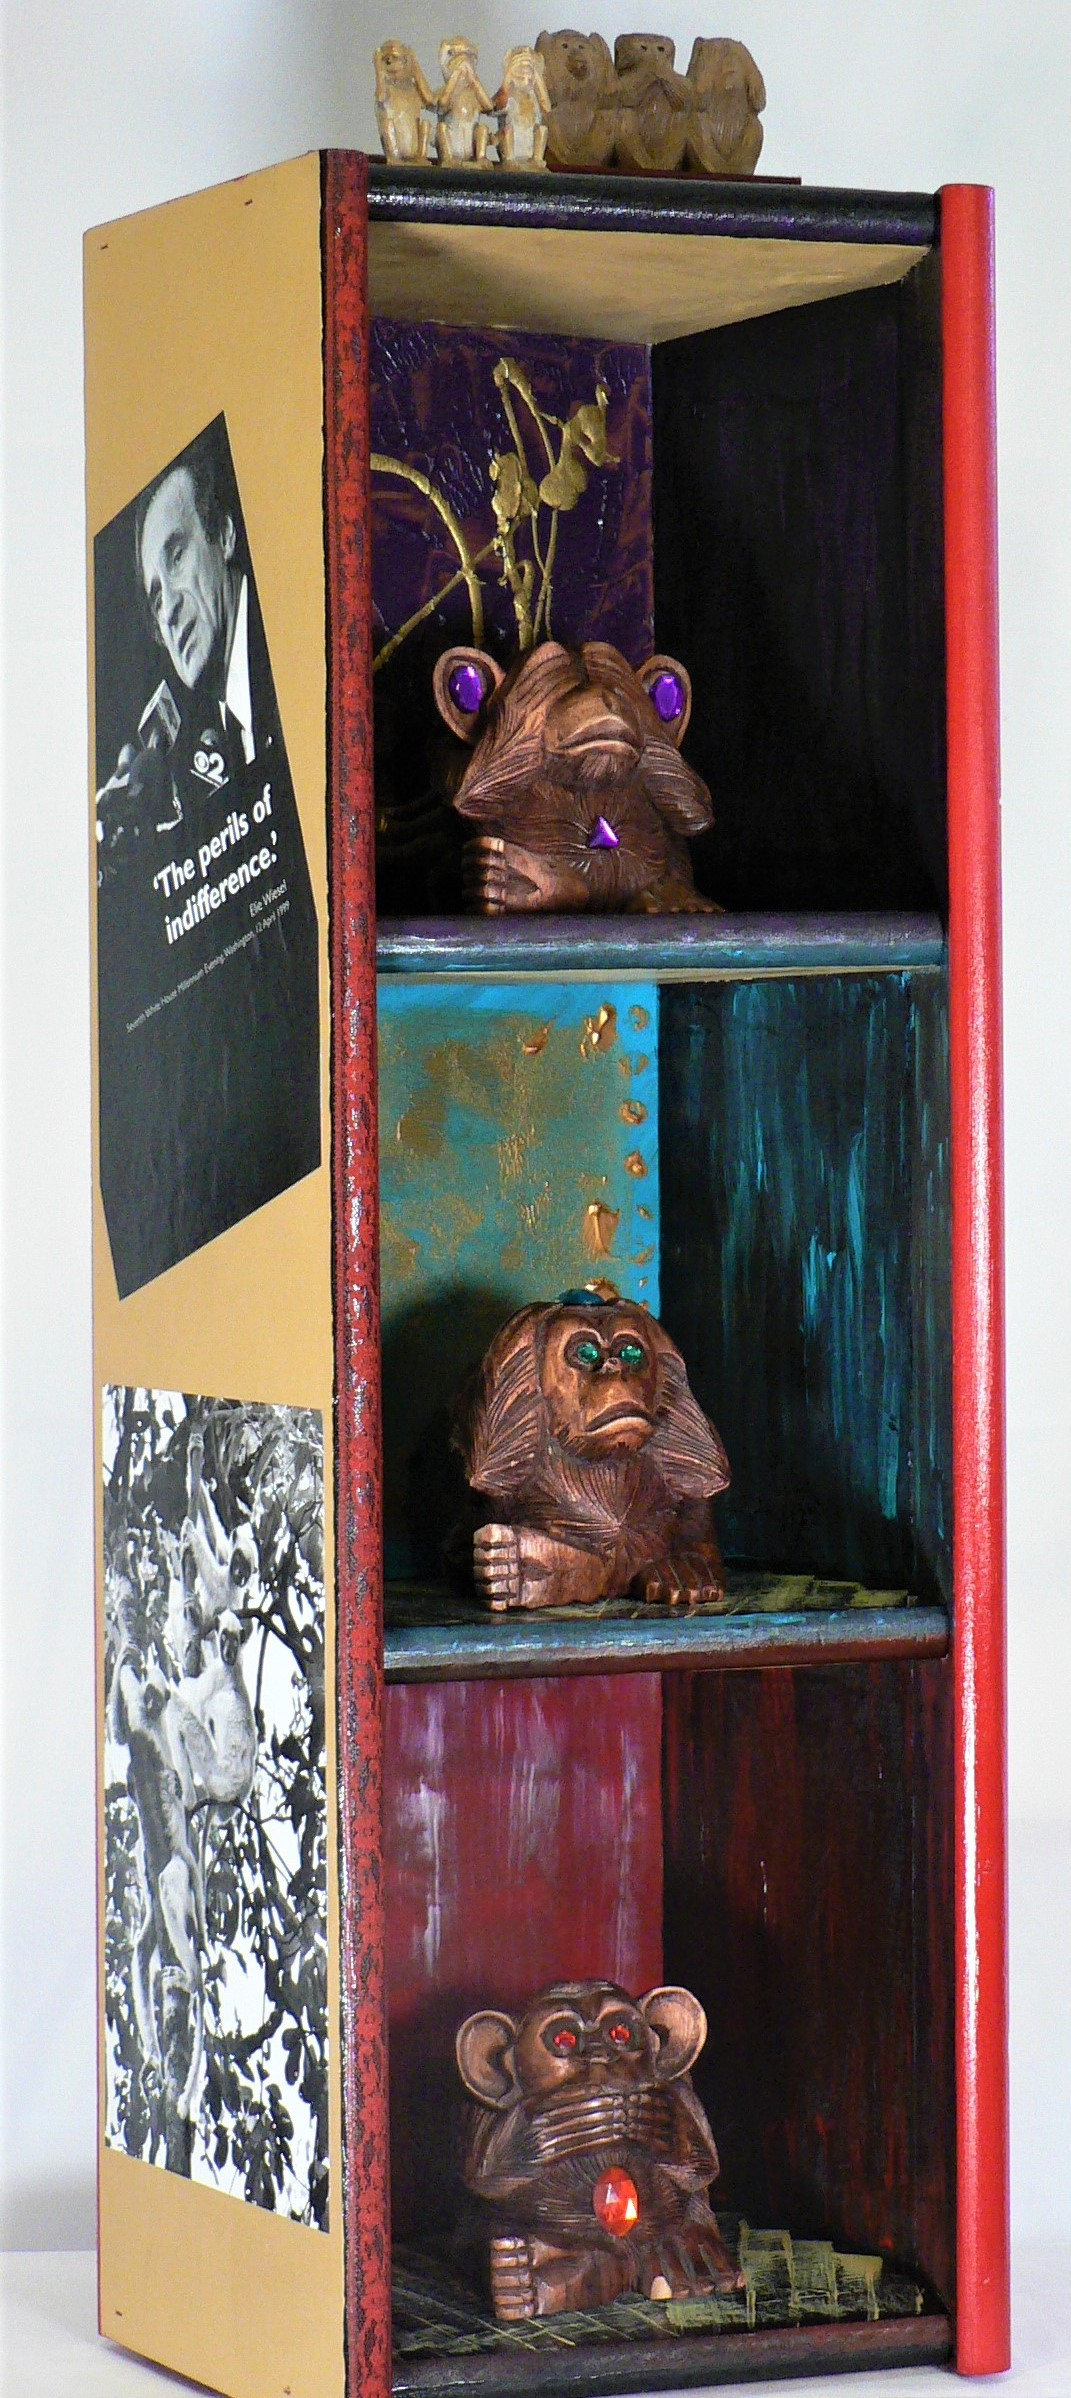 "Indifference - ""The Perils of Indifference."" – Elie Wiesel.Materials: Wood monkey carvings (source unknown); stone monkey carving (my father's desk); postcard image Japan c 1930 (Ulrich Collection); African monkey image (Genesis, Lisa Salgado & Sebastiao Salgado); Wiesel image from Speeches that Changed the World; Michelangelo's Fall of Man image (Sistine Chapel, Vatican); Bhairav (Hindu diety of destruction) image (Himalayan Spirit calendar, Craig Lovell, 2005); lace; acrylic paint; wood. Dimensions: 30""H x 11""W x 9.5""D. Created: February 2019.Status: For Sale ($250)"